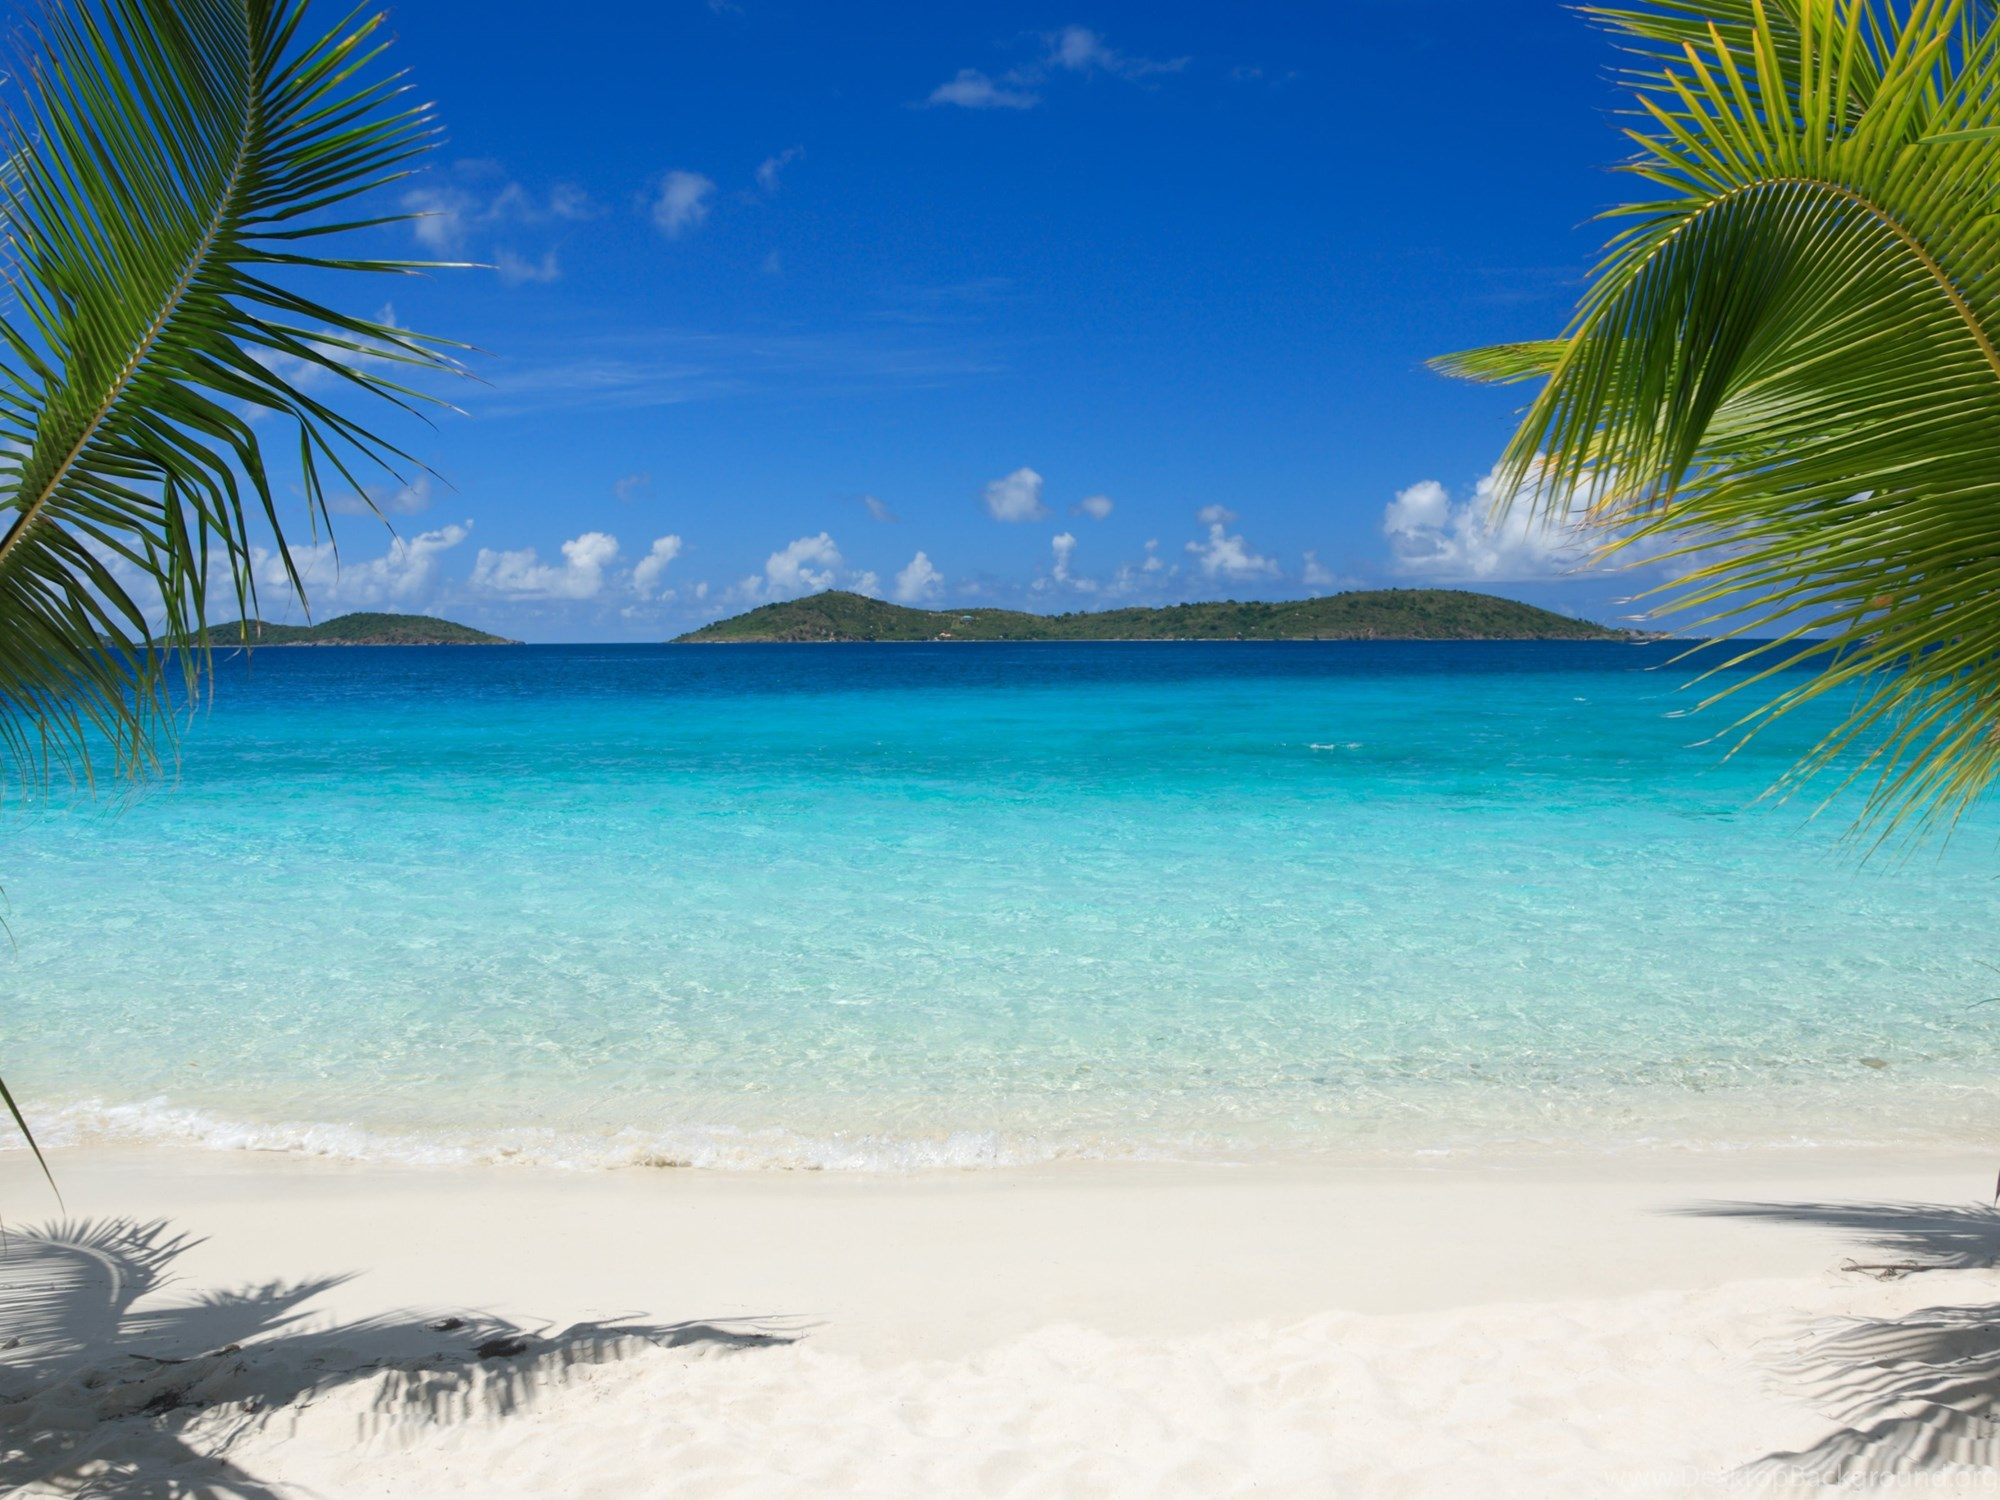 Hammock On Beach Wallpapers: Tropical Beach Pictures Hammock Wallpapers For Iphone